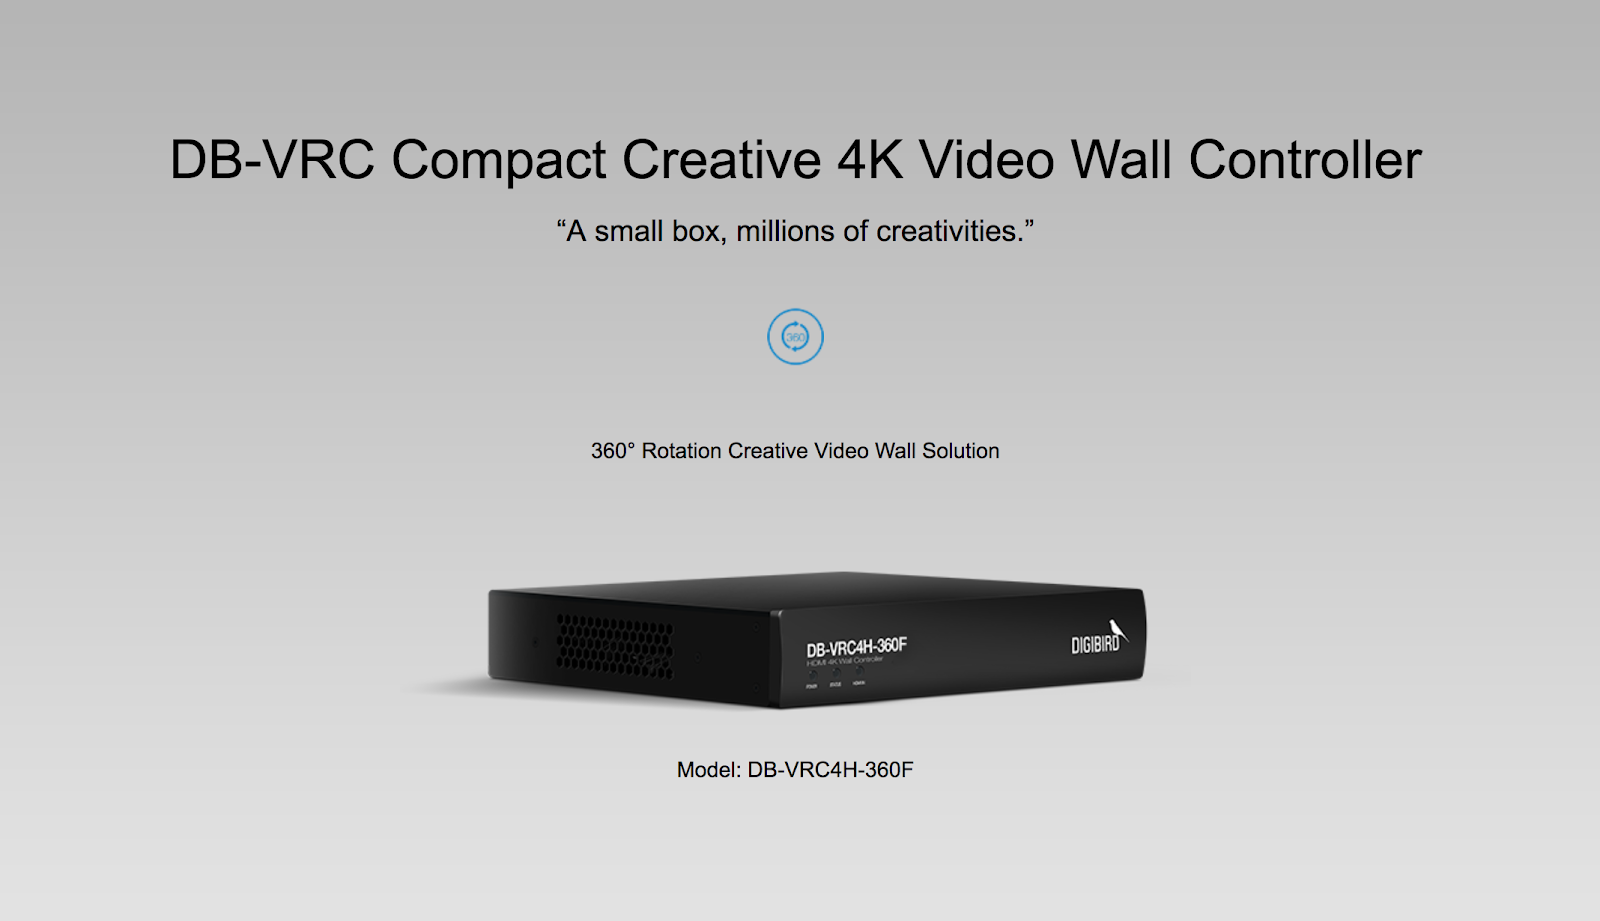 The DigiBird DB-VRC4H-360F is 1×4 HDMI, compact video wall